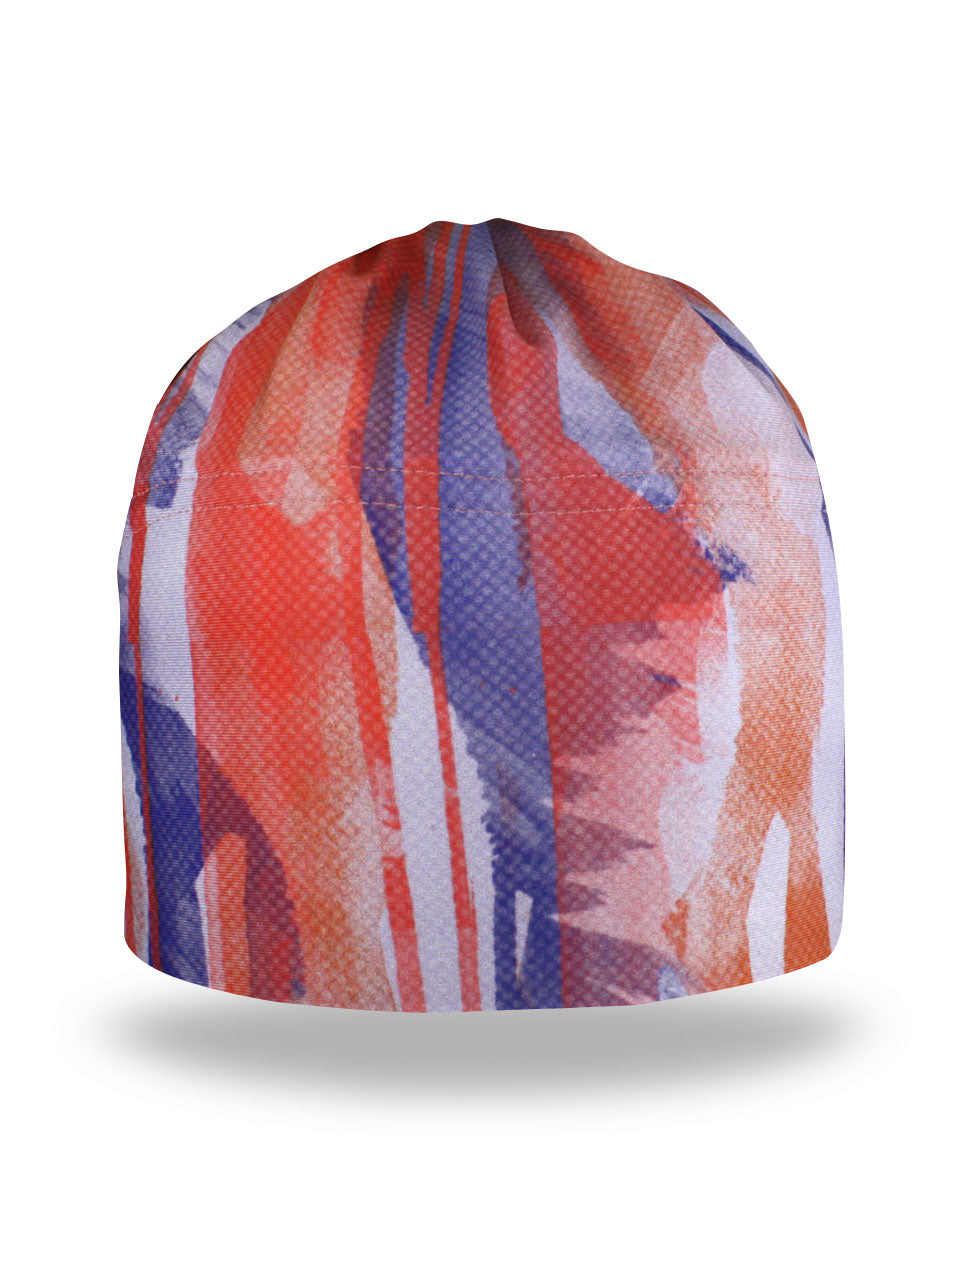 fleece lined winter hat with peach, coral and blue streaks